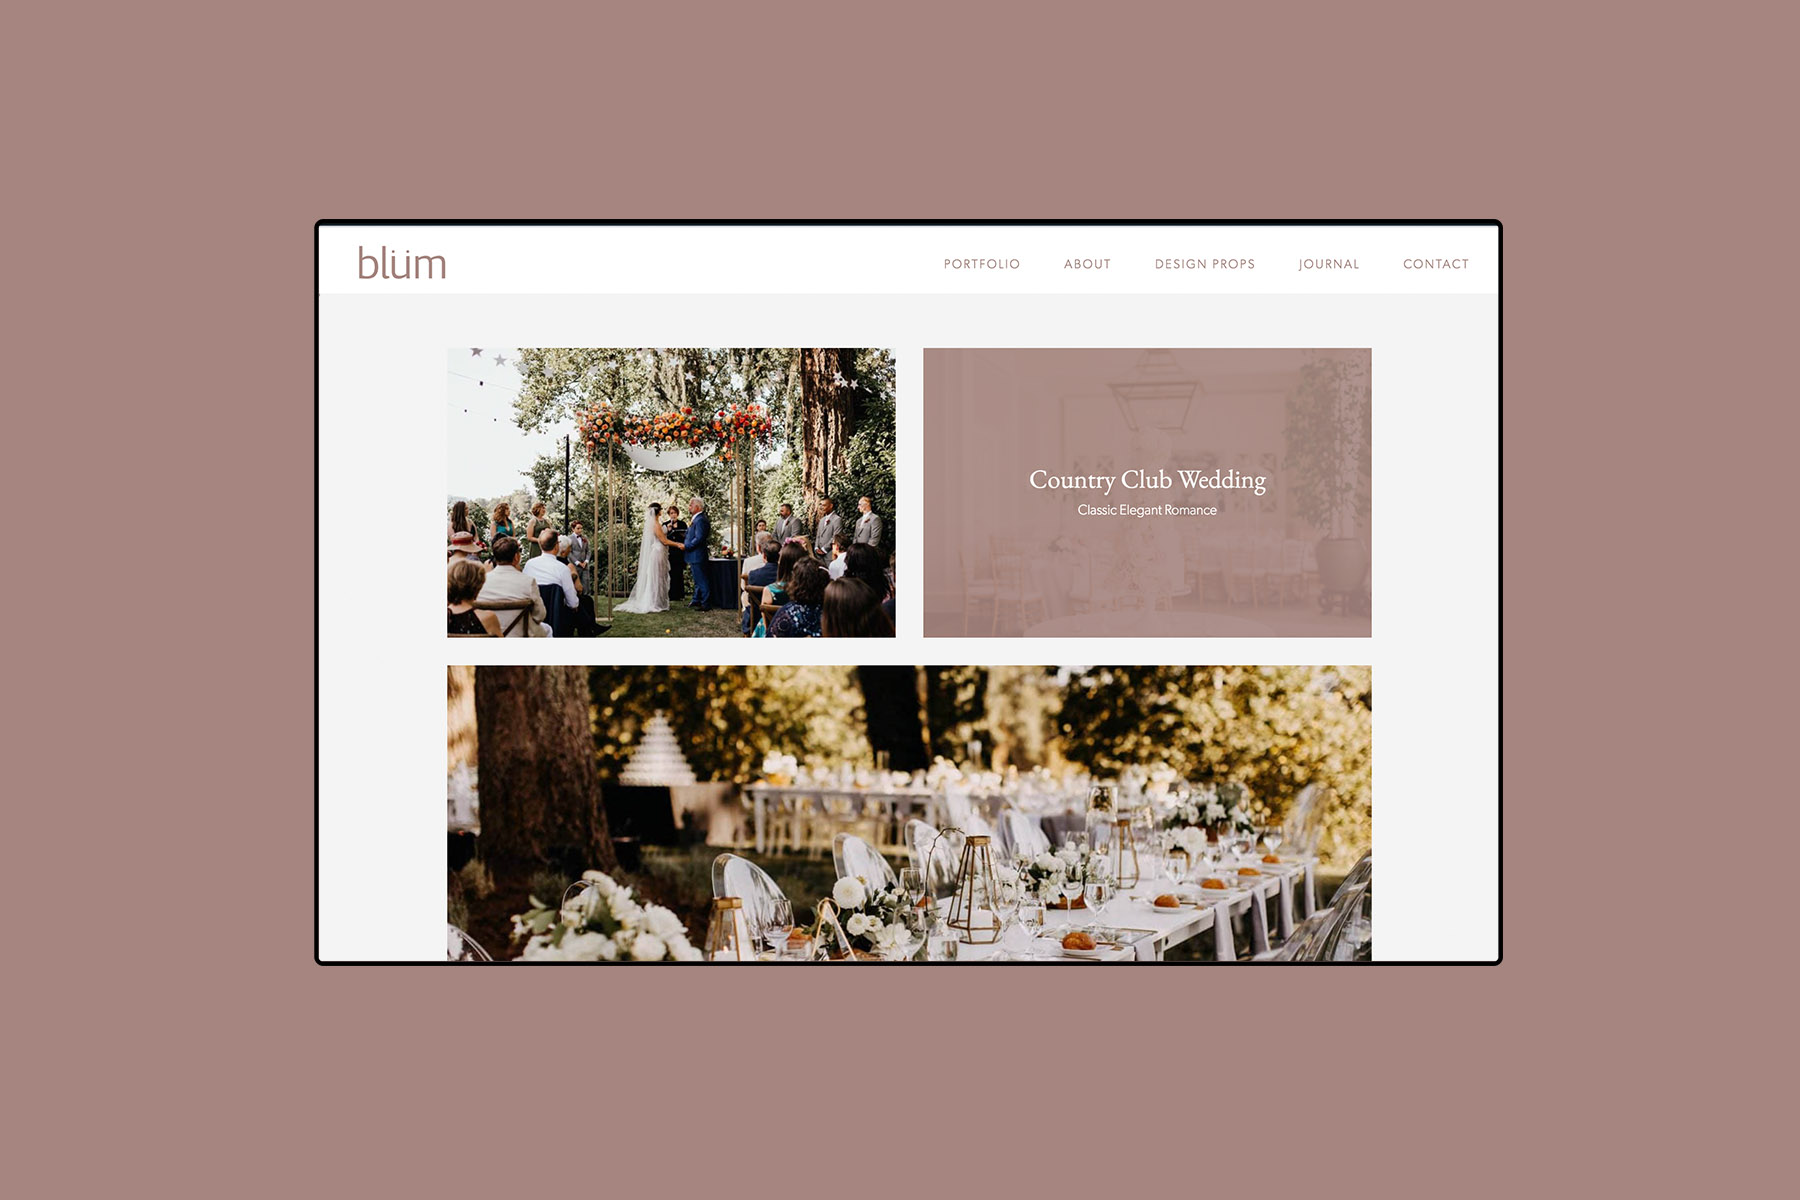 desktop web design for Blum floral design portfolio